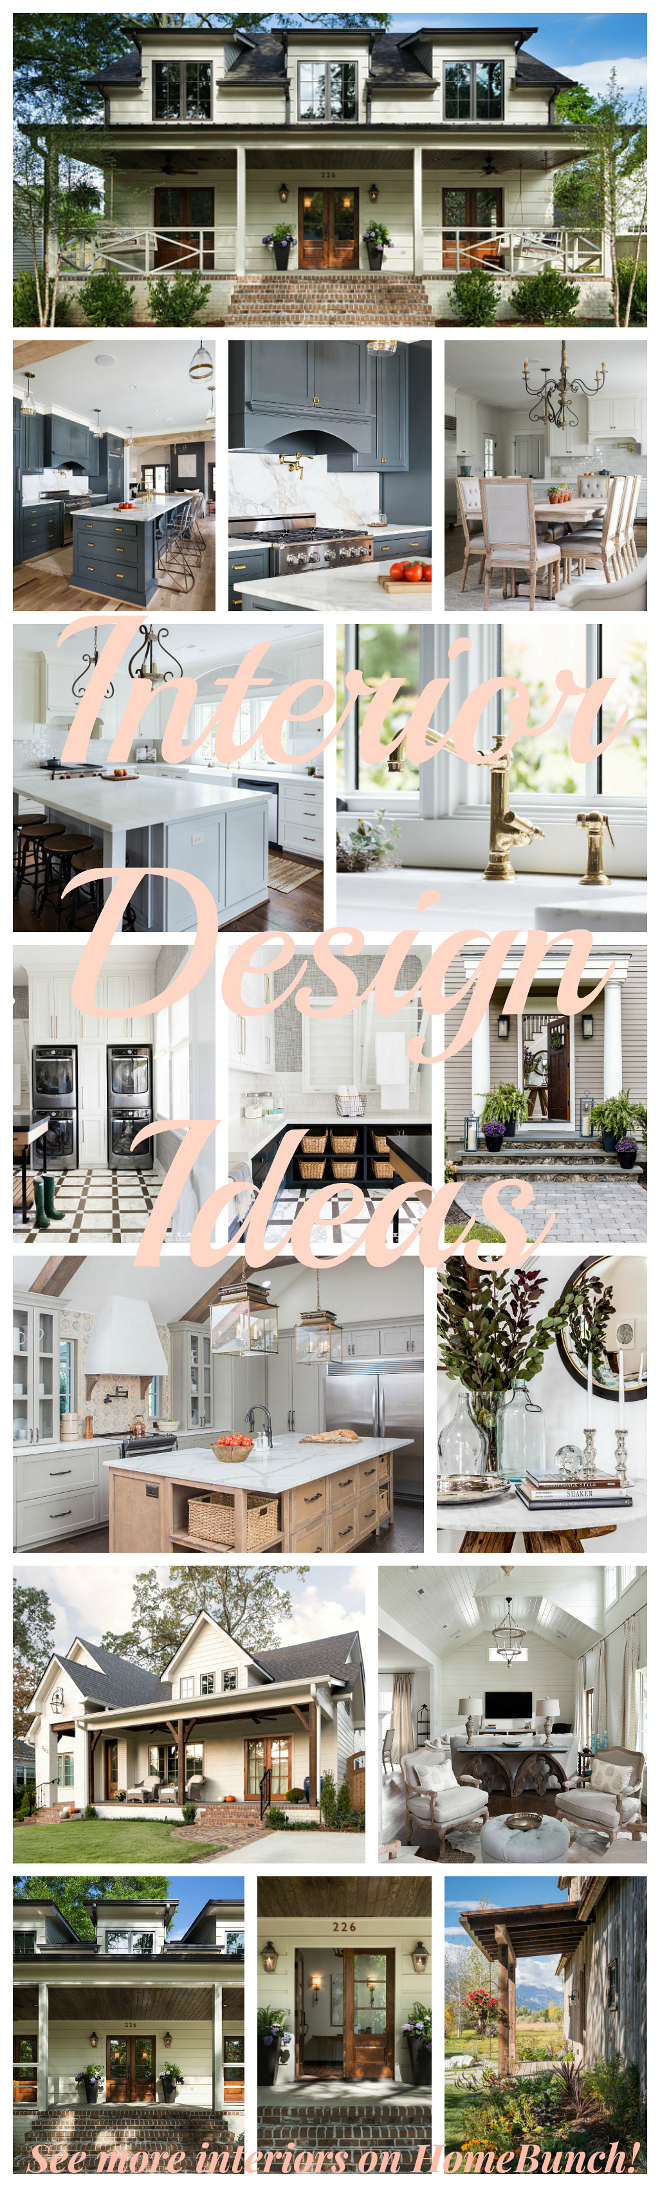 Interior Design Ideas. Home Bunch Blog weekly series showcasing the lastest interior design trends. Interior Design Ideas #InteriorDesign #InteriorDesignIdeas #blogs